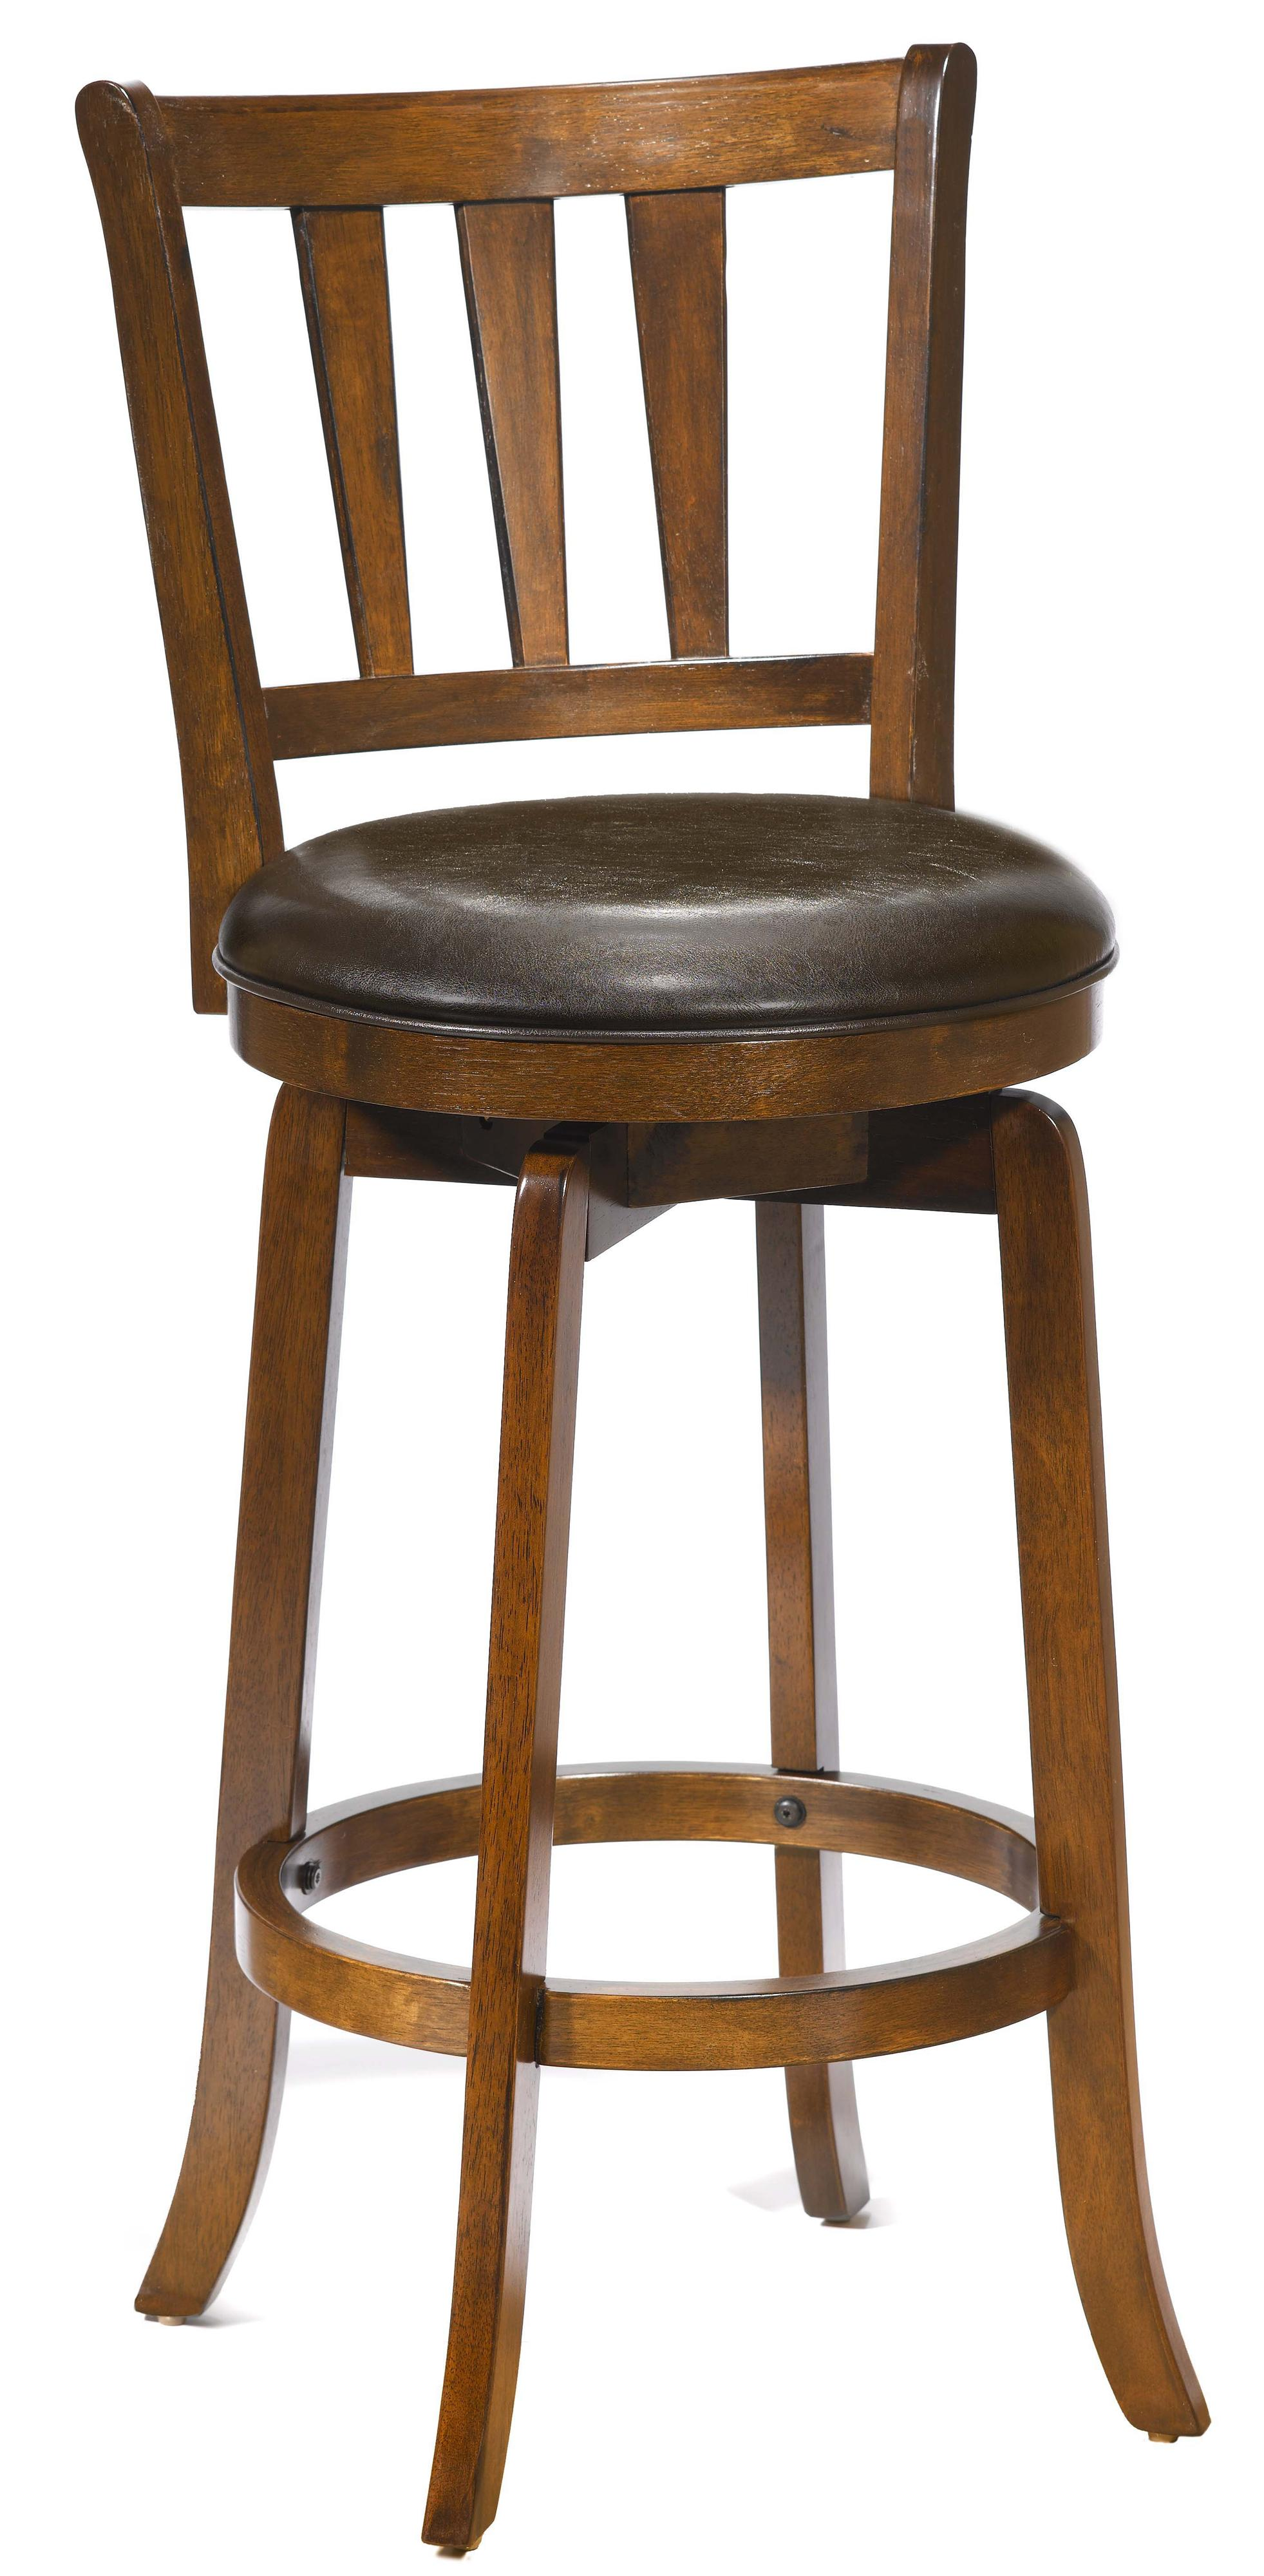 26 counter height presque isle swivel bar stool by for Counter height swivel bar stools